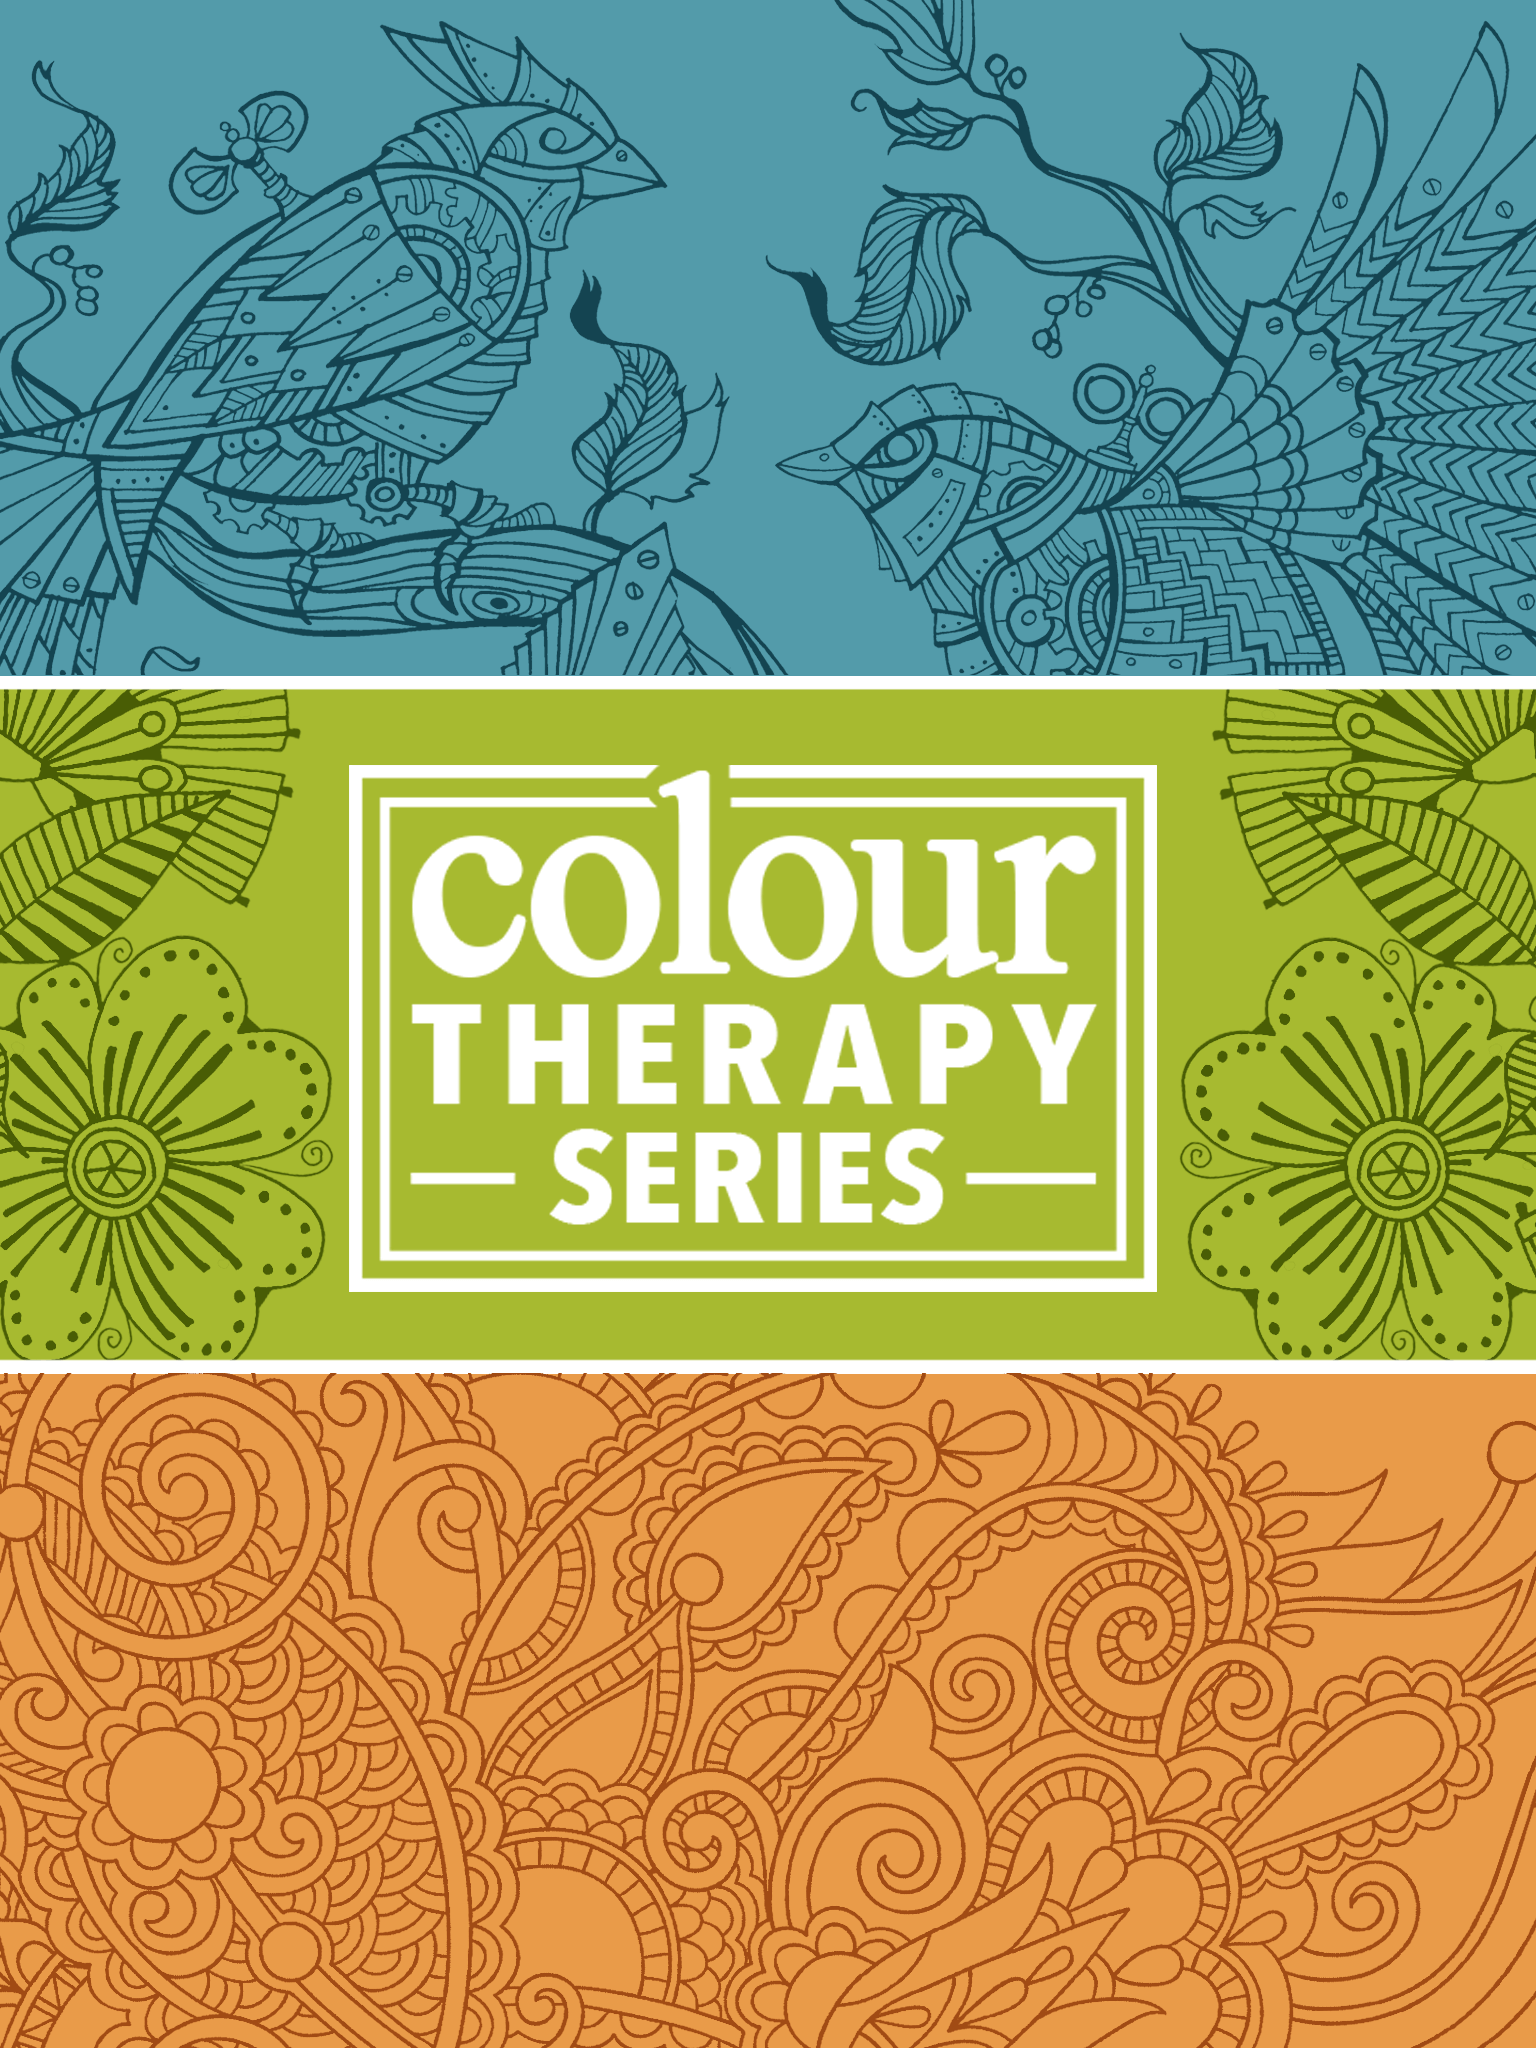 iTunes app for the Art Therapy adult colouring book series